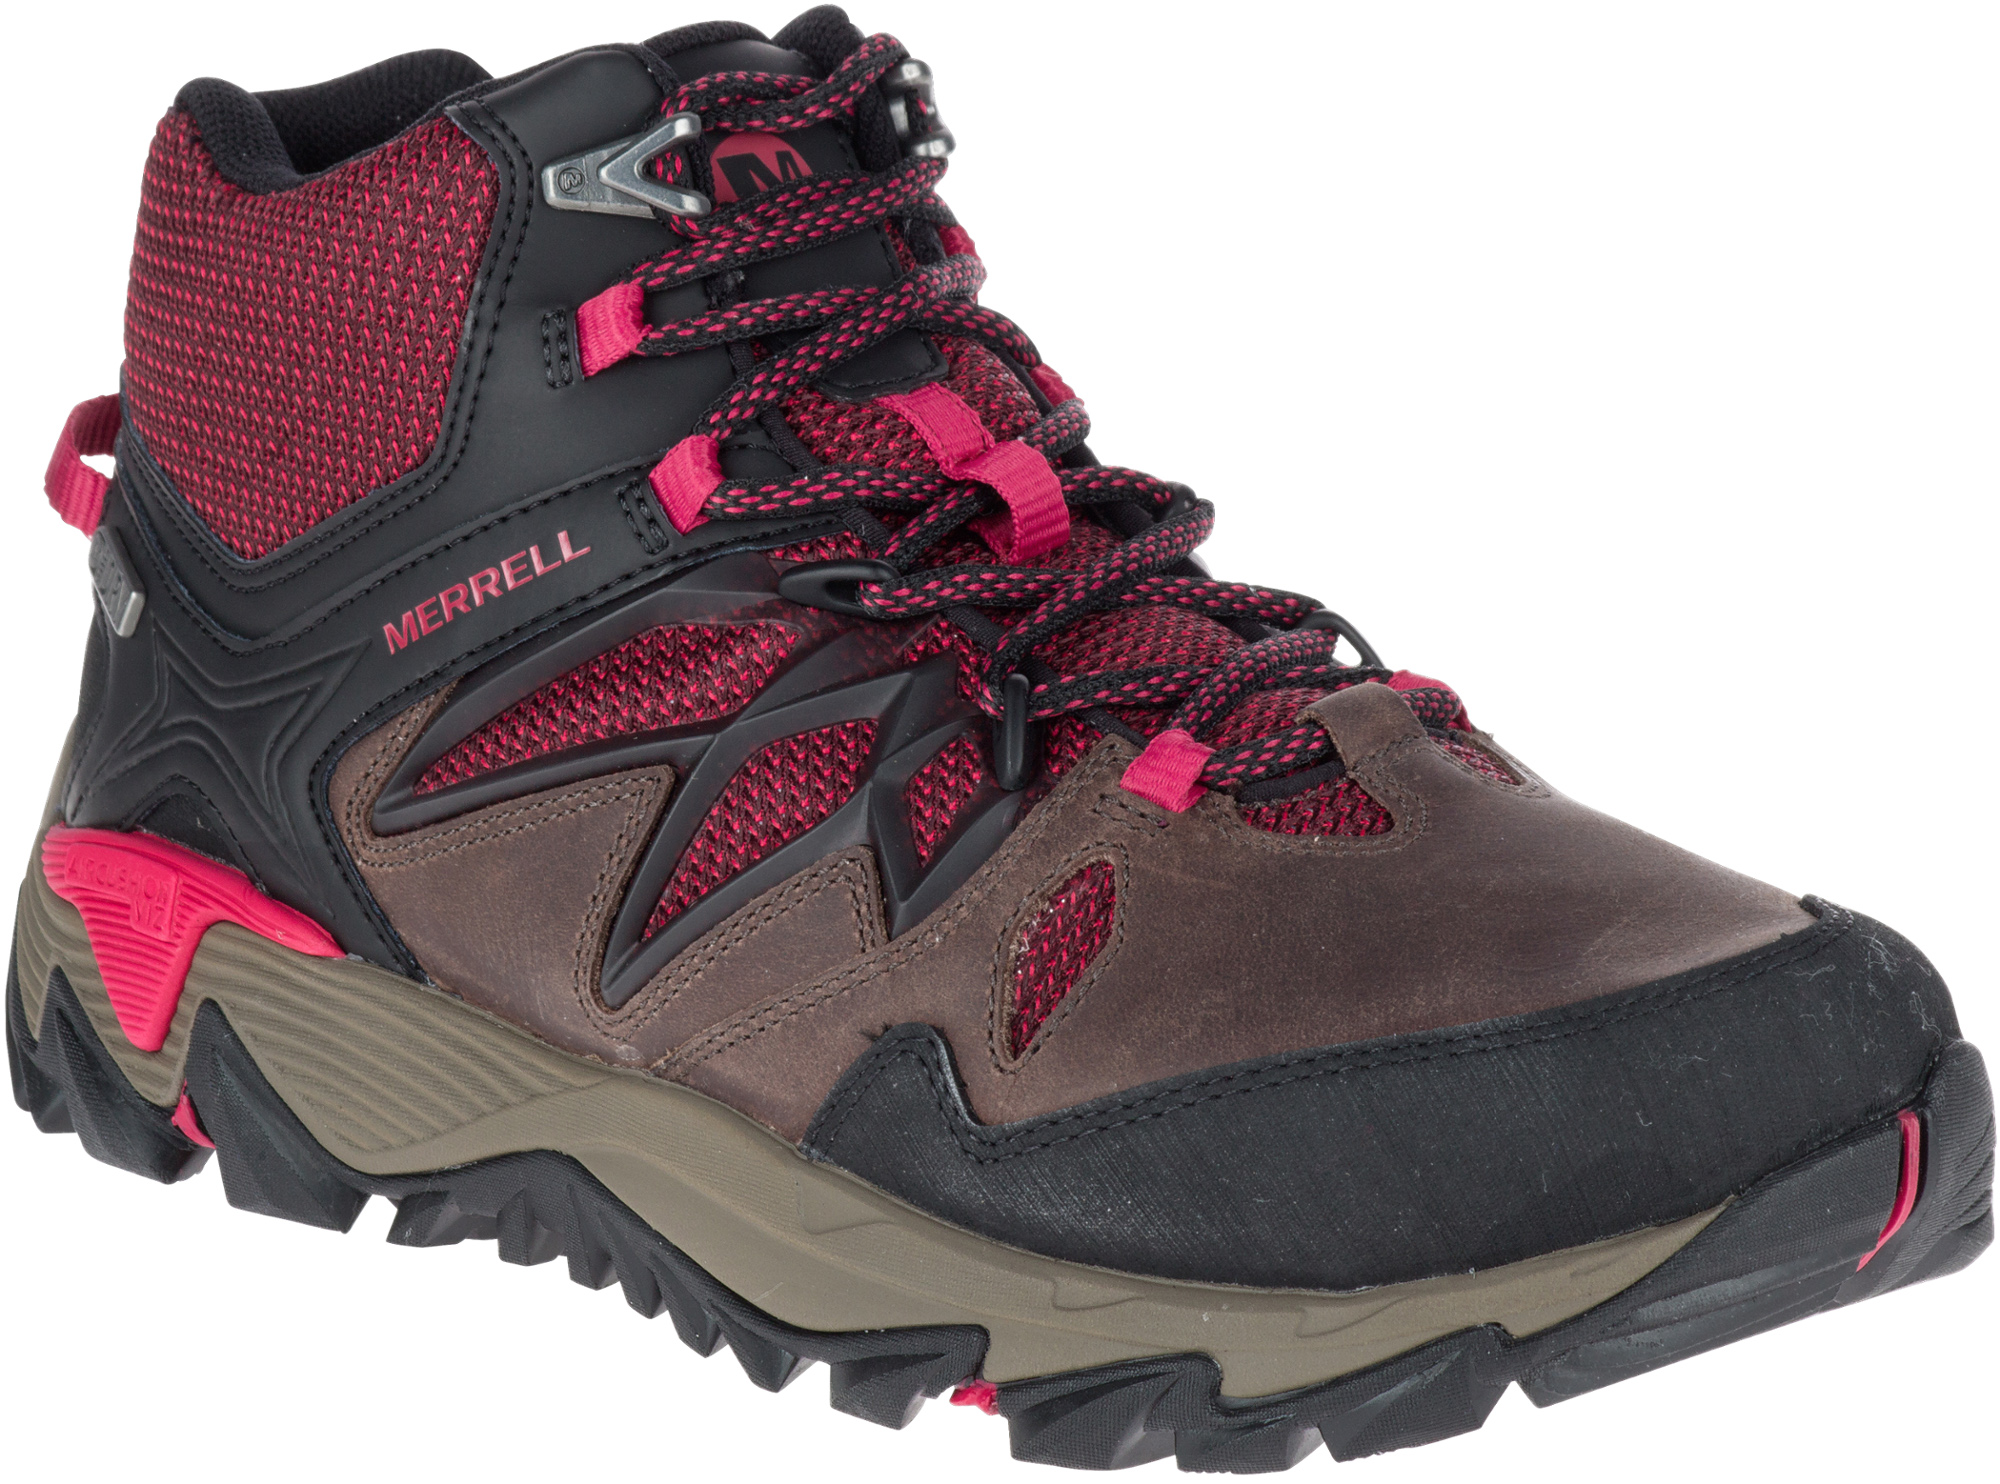 fe13d92c49b Boot Bargains: Save an Extra 25% on Several Hikers From REI | GearJunkie